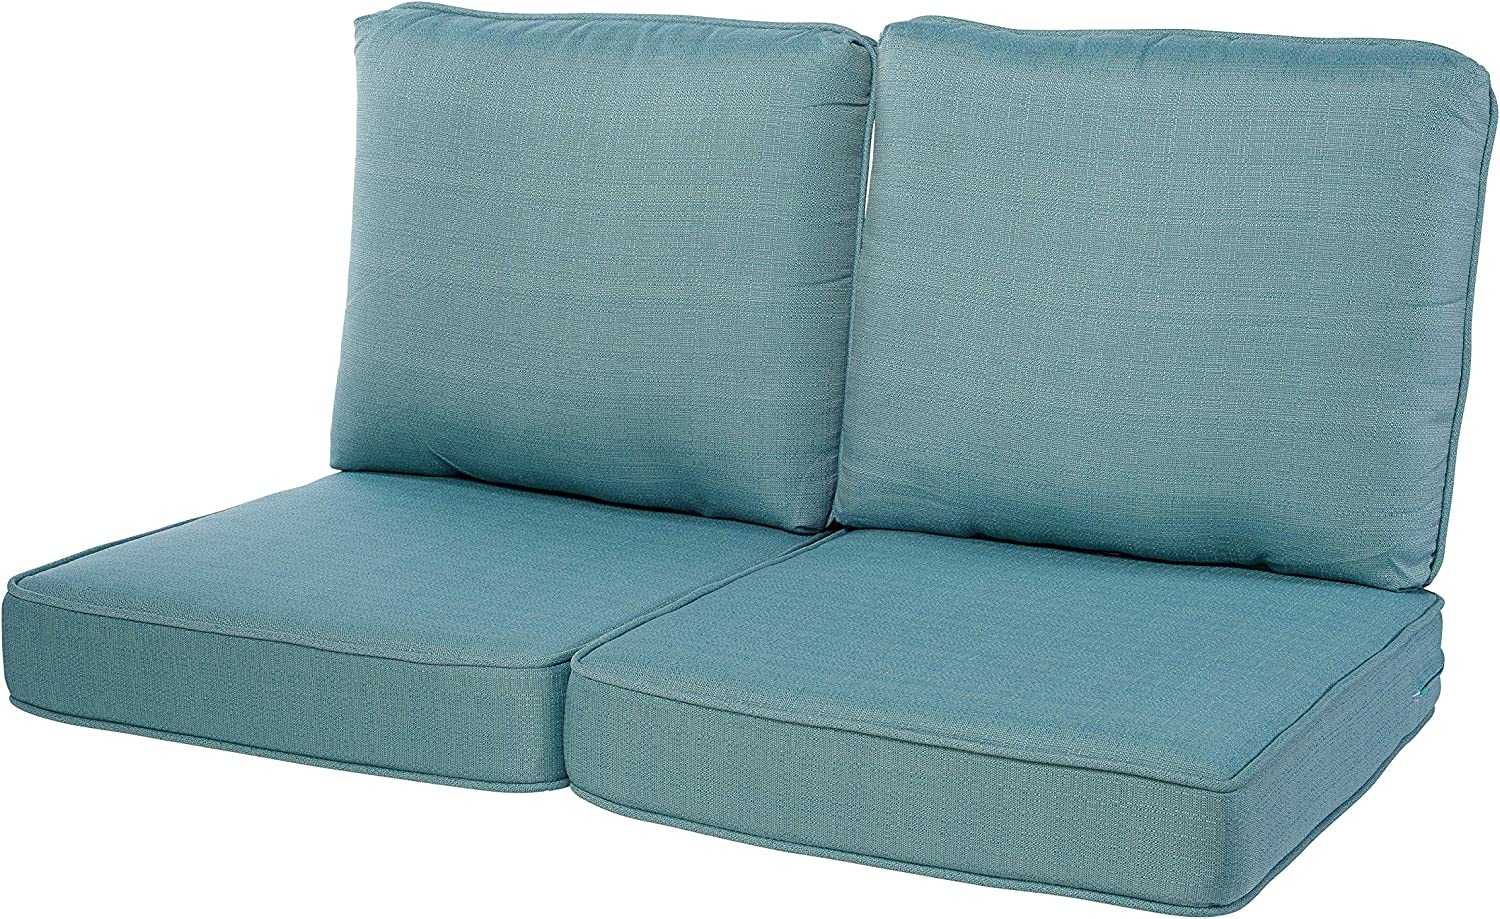 Quality Outdoor Living 29-AB02LV Loveseat Cushion, 44 x 25 4PC, Arctic Blue